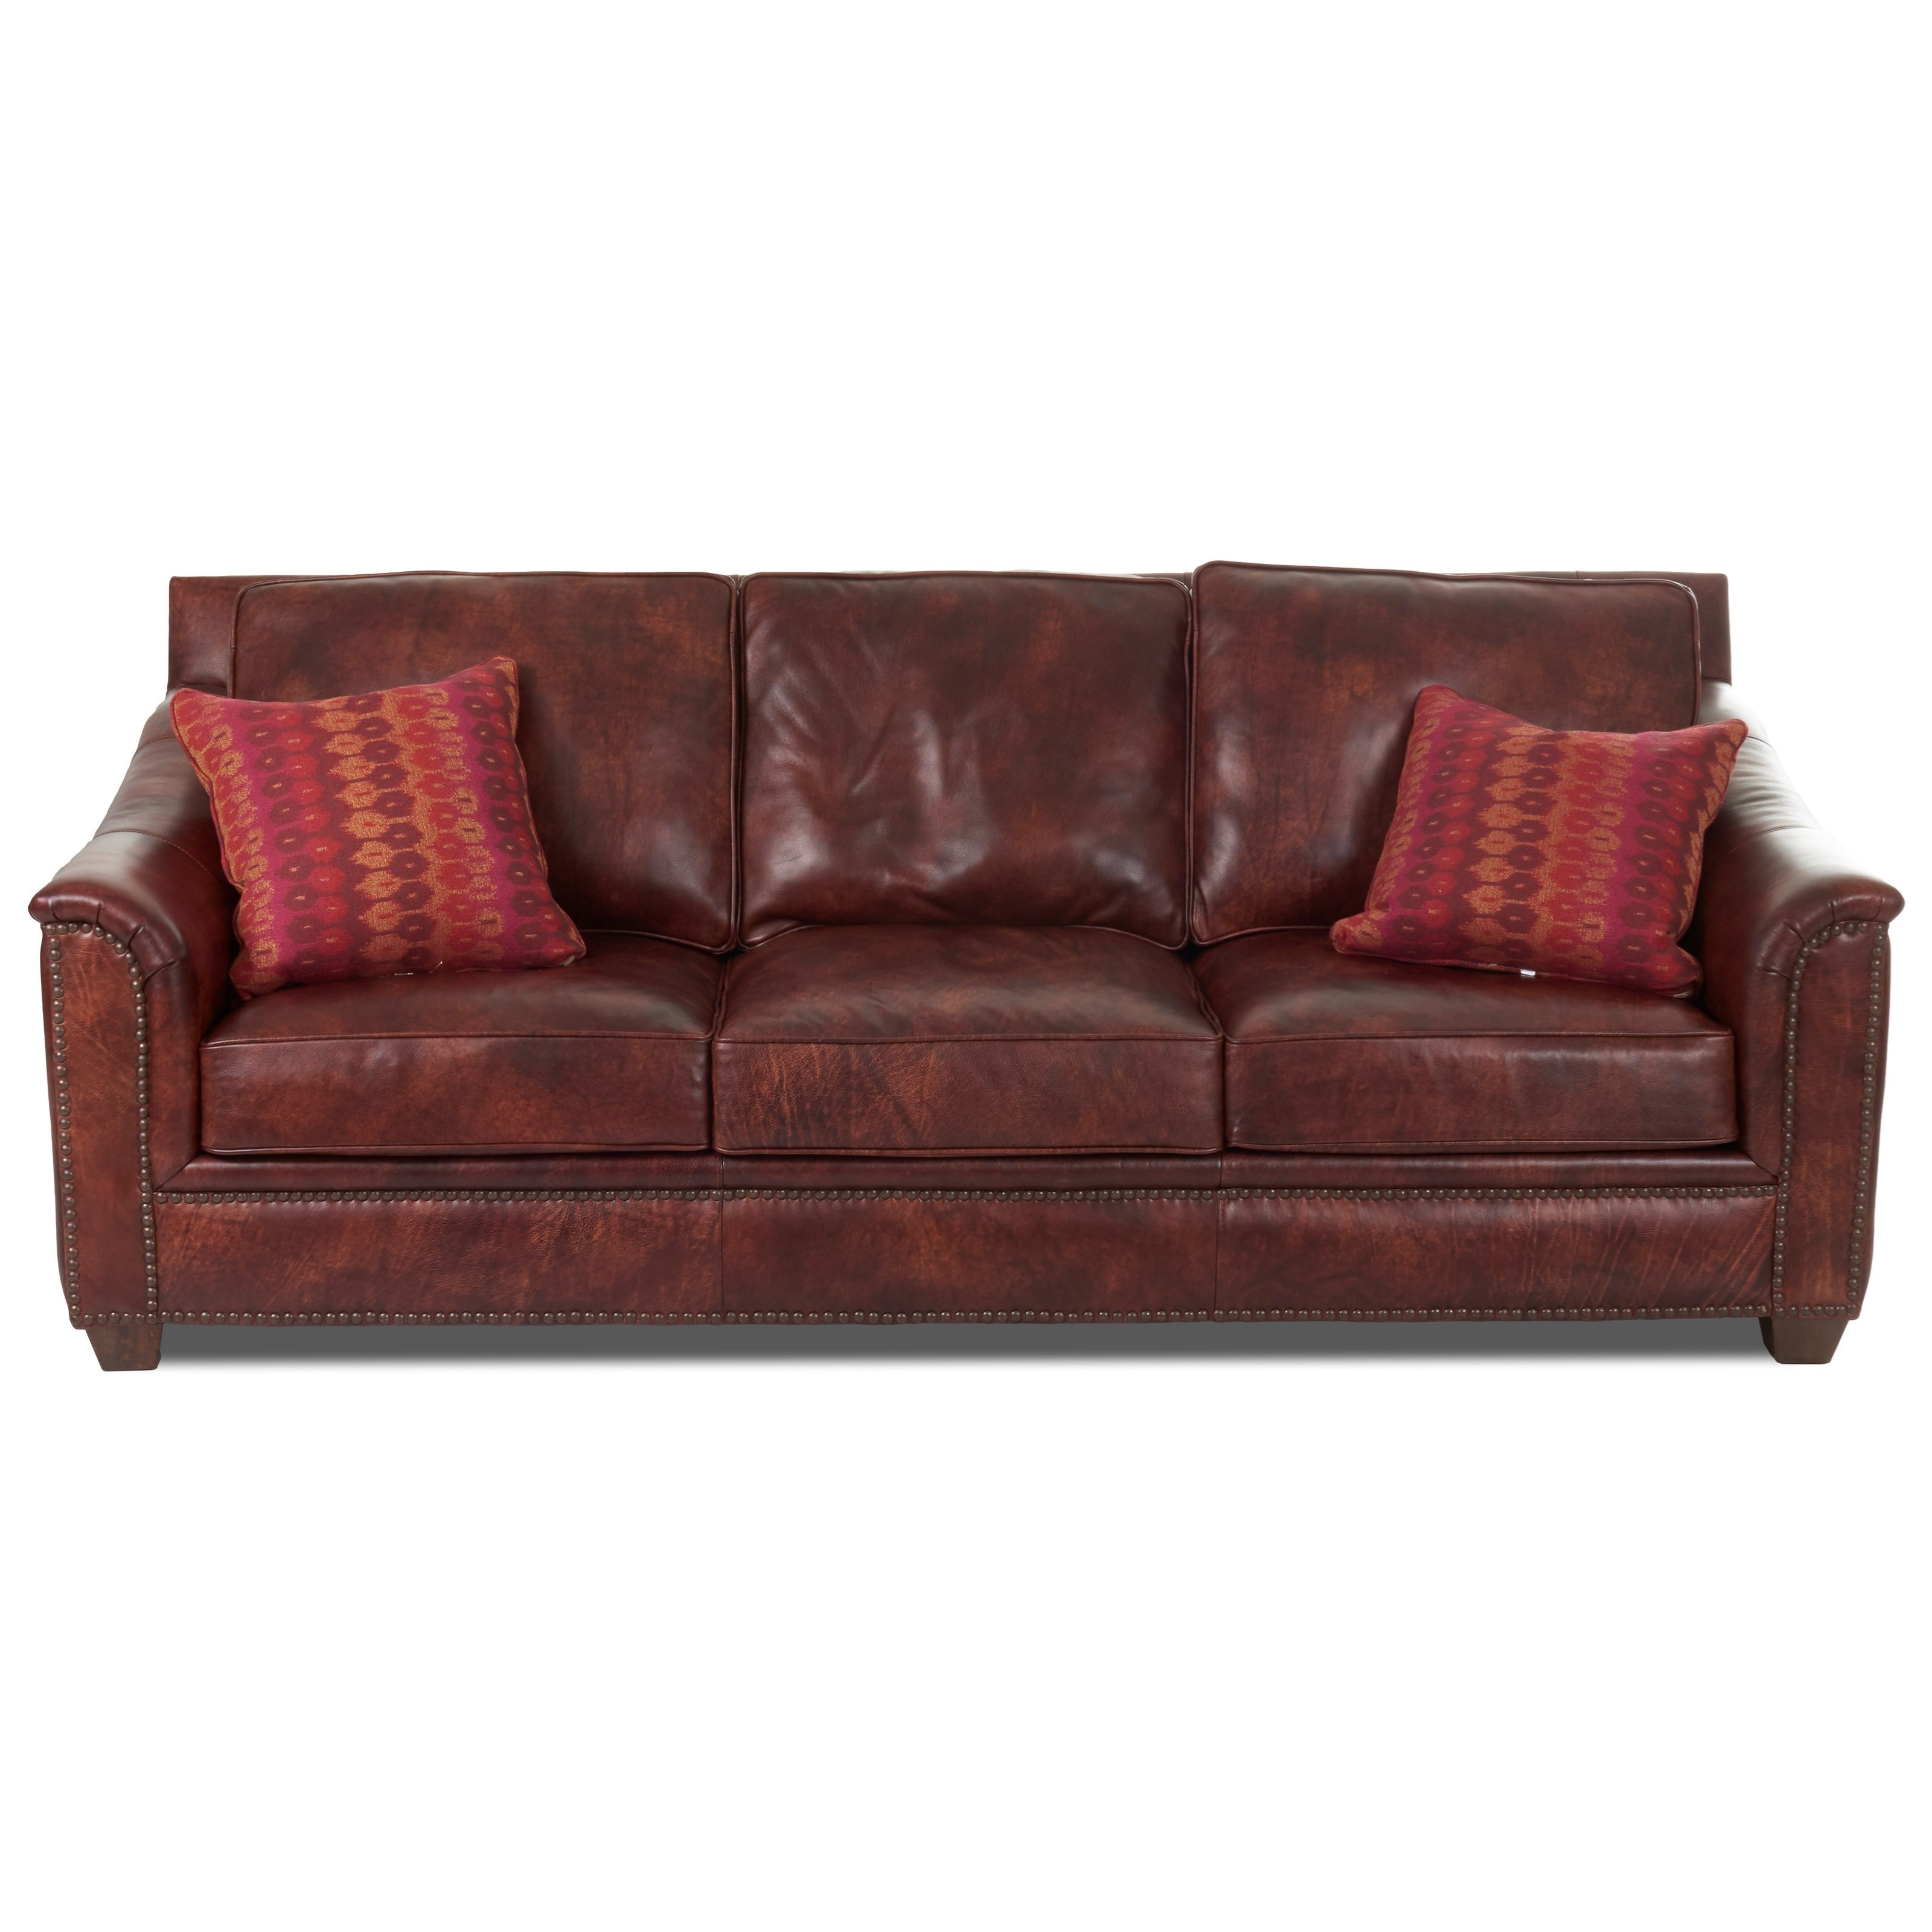 Klaussner wilkesboro ld43410ap s leather sofa with for Sofa with studs